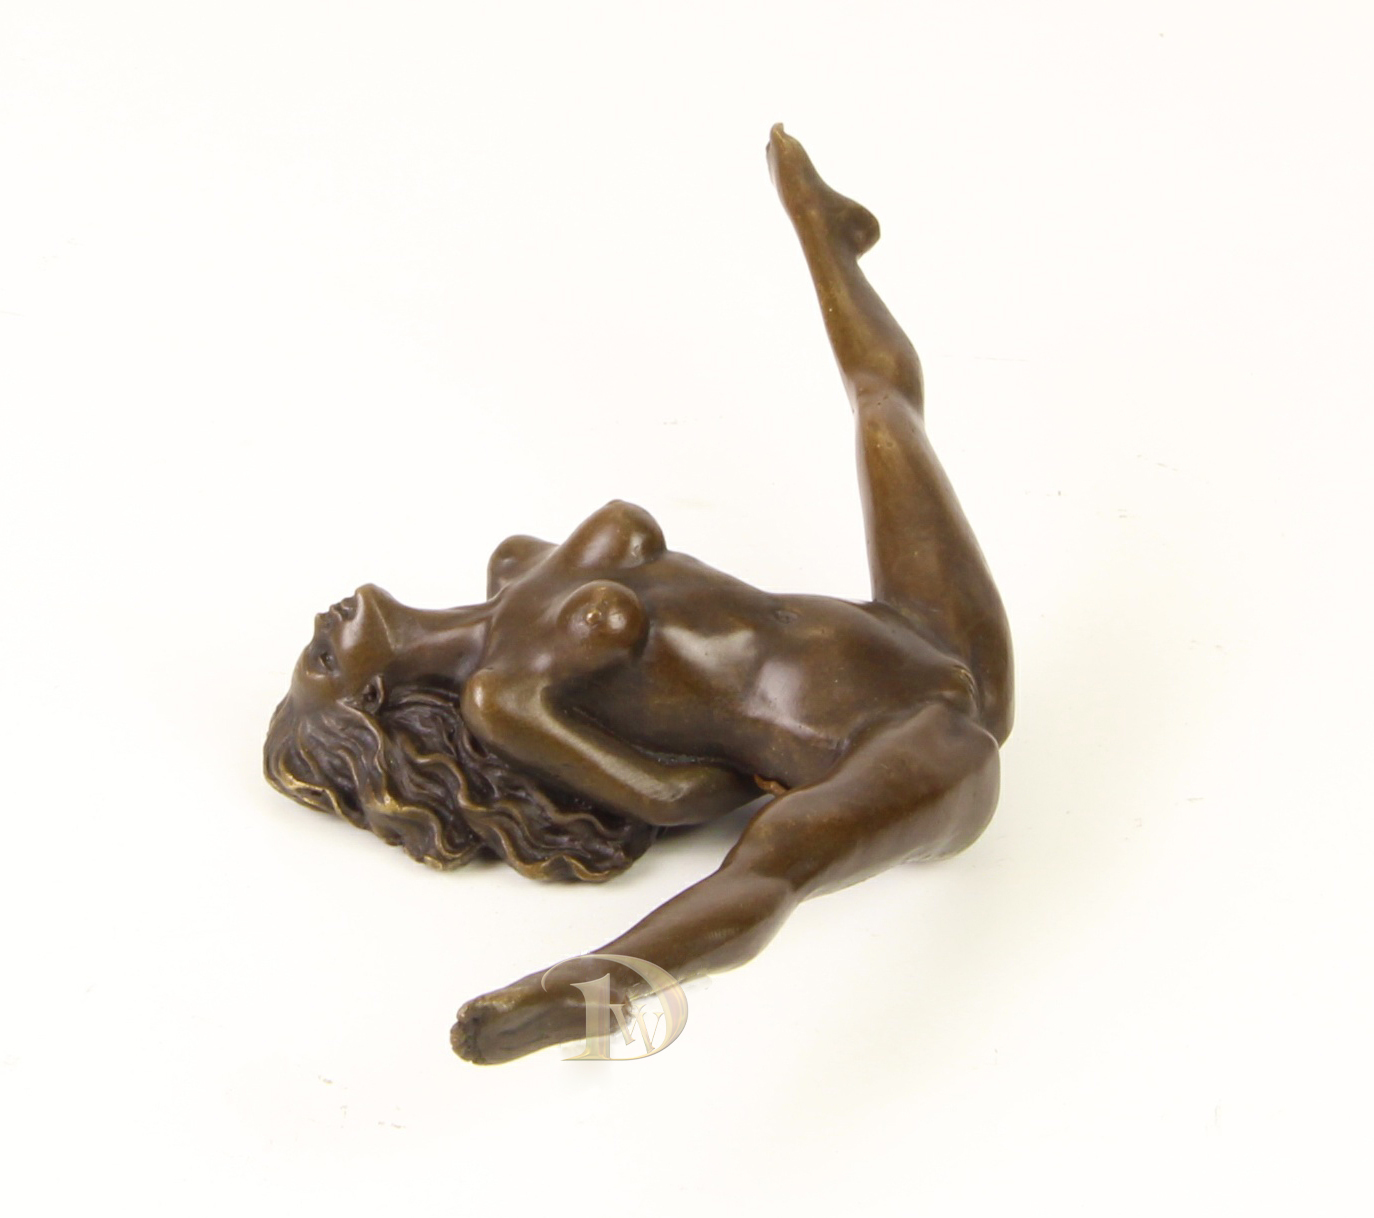 Antique Home Decor Bronze Sculpture shows Erotic Bronze signed * Free Shipping